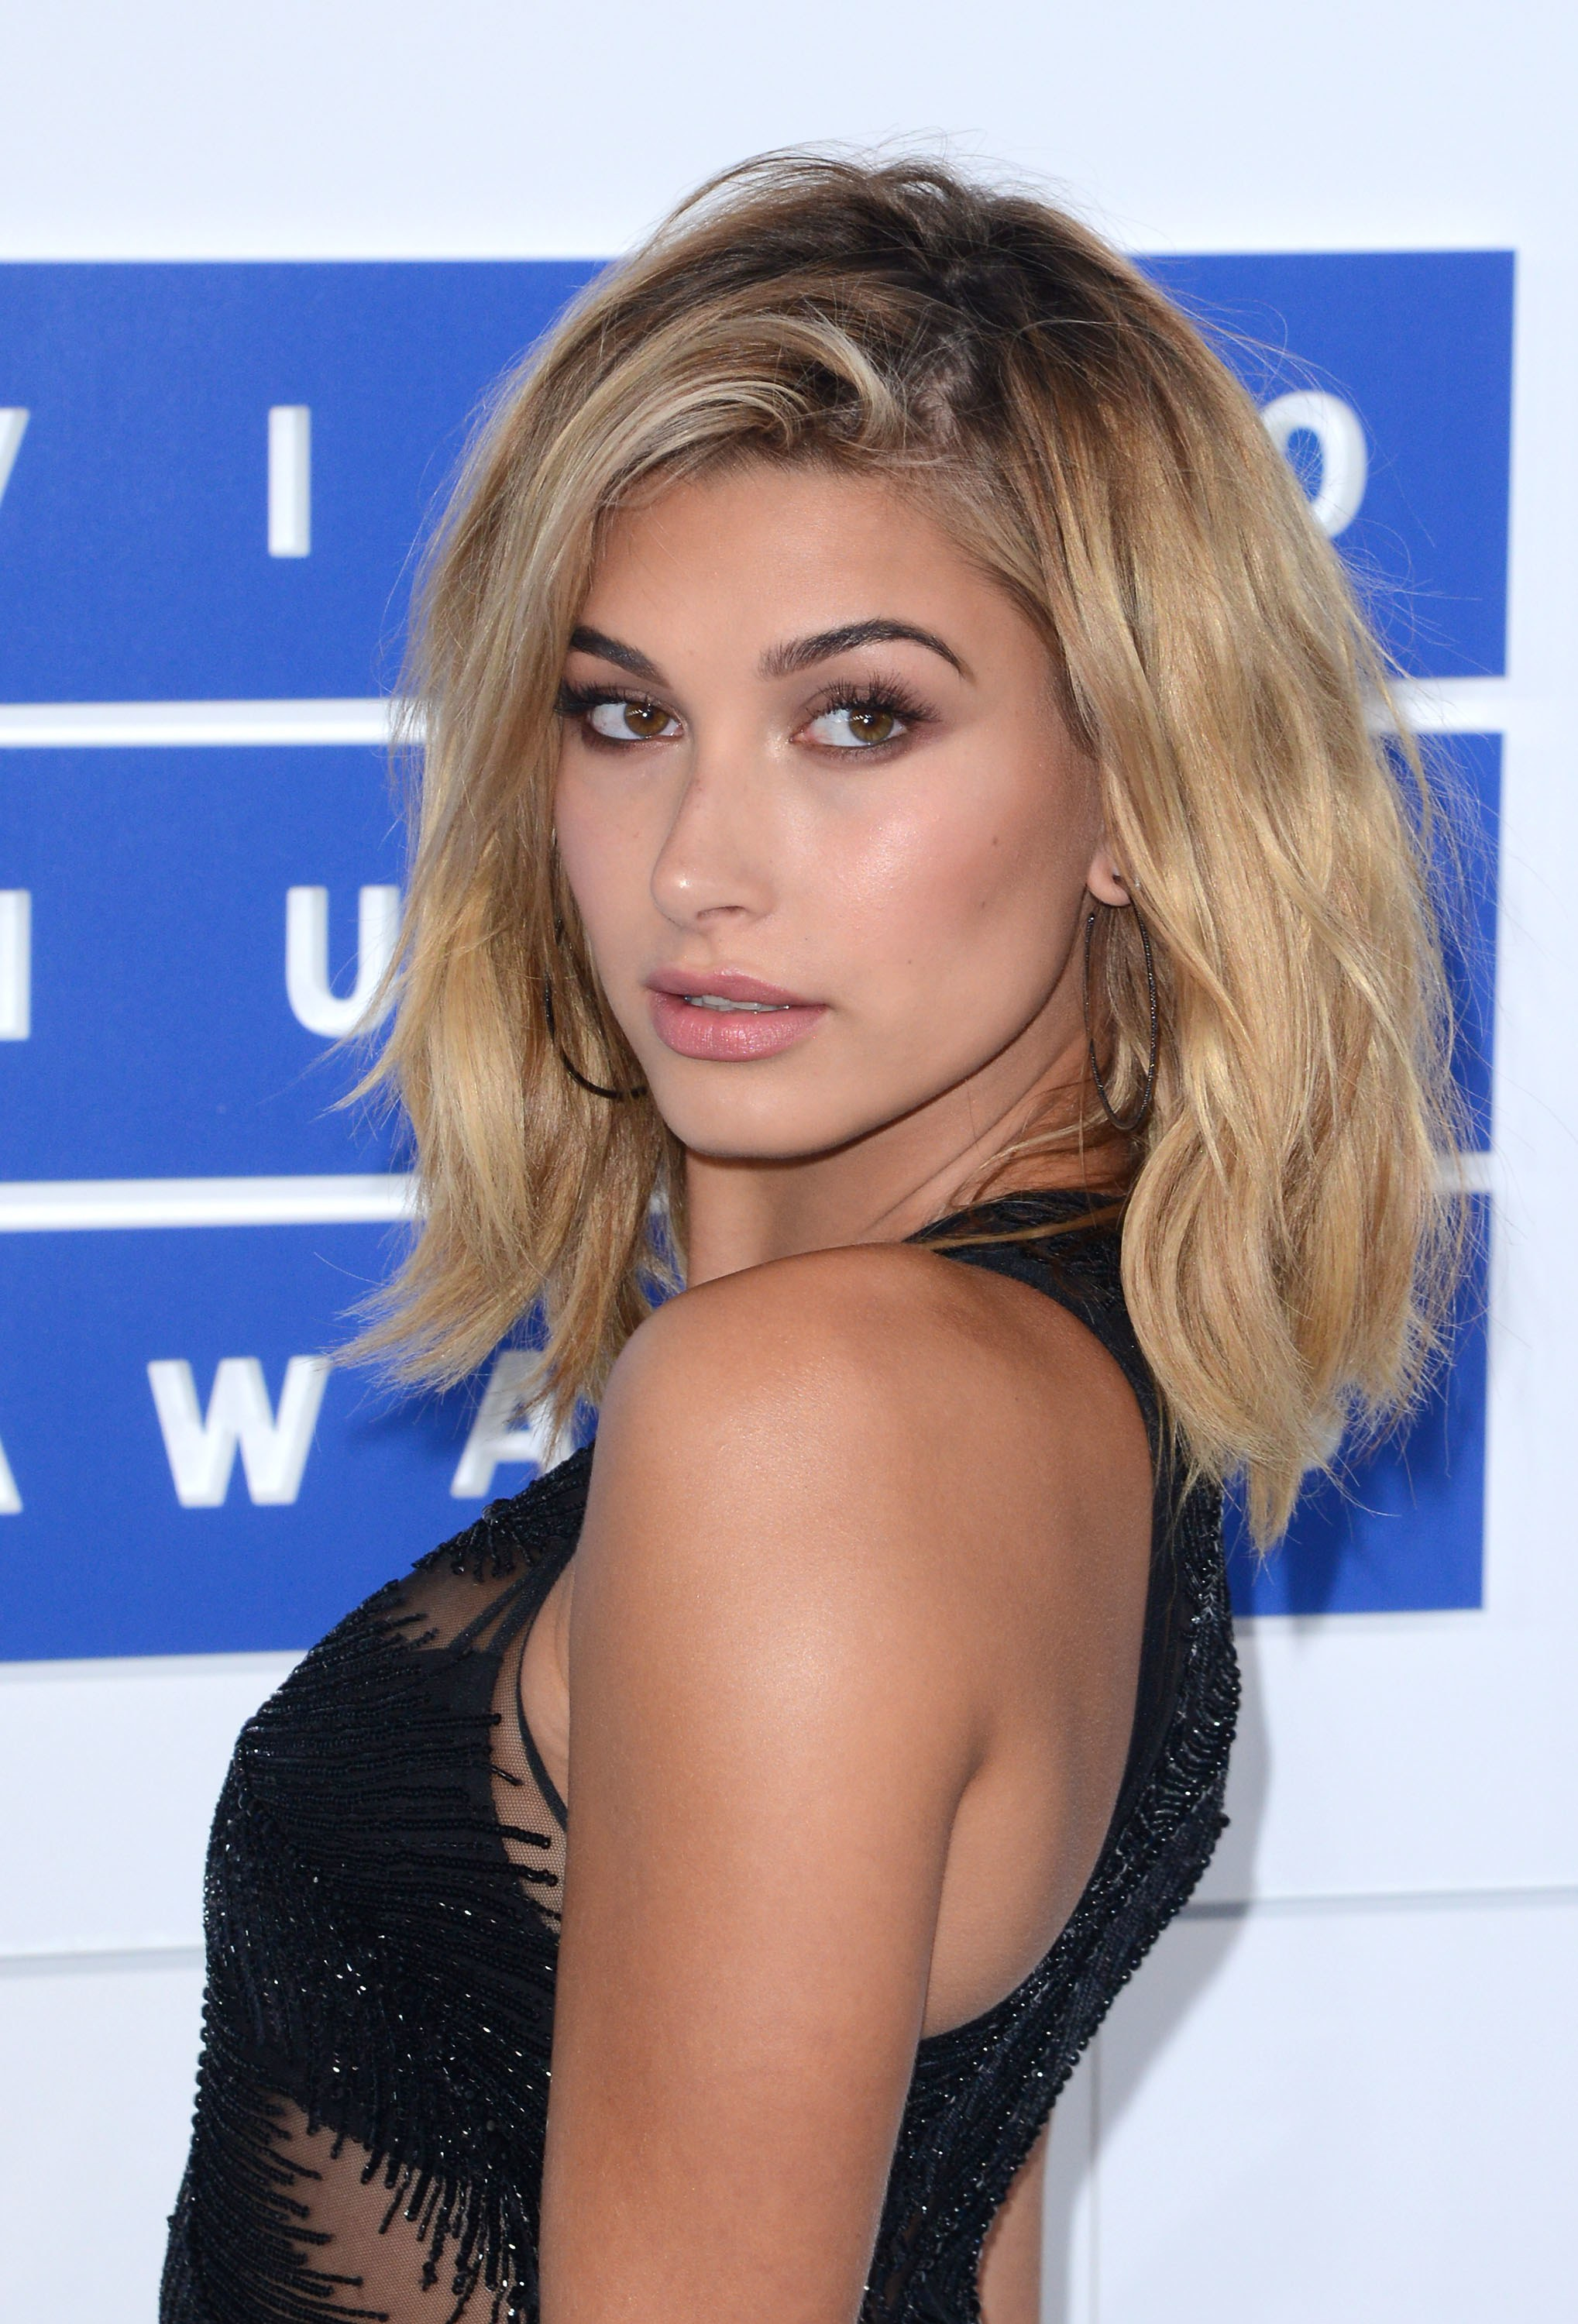 33 Hot Hailey Baldwin Sexy Pictures Will Make You Hot